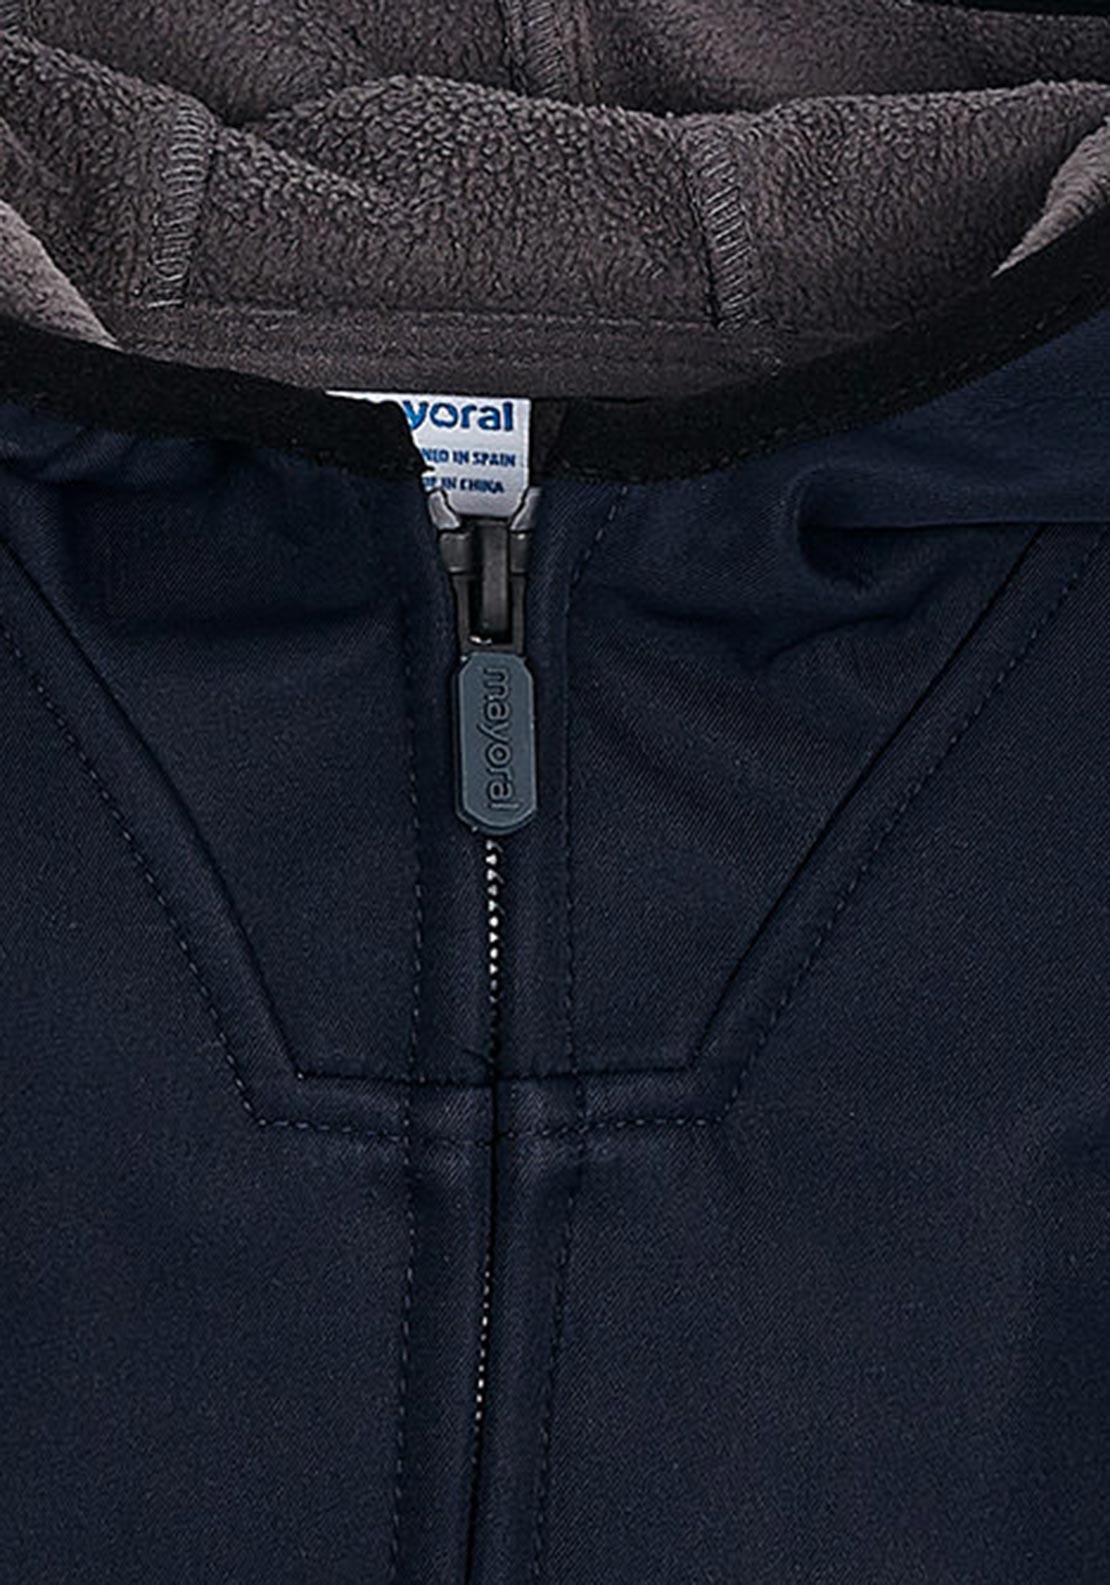 41f6ceada778 Mayoral Boy All Weather Outdoor Jacket